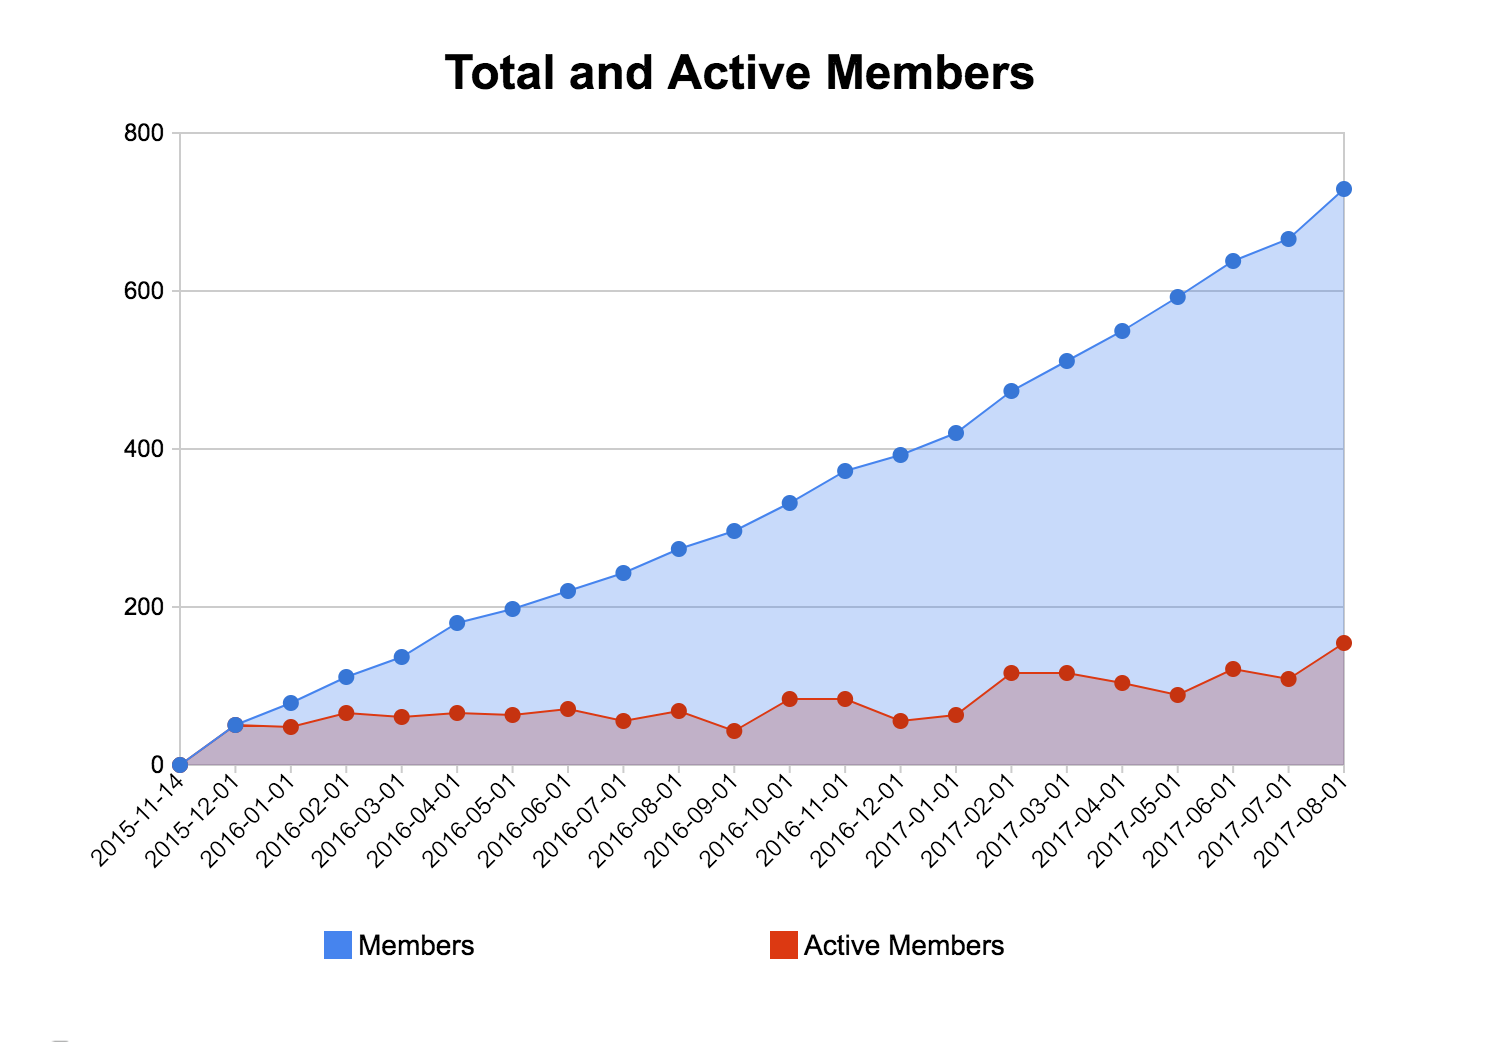 Total and Active Members chart